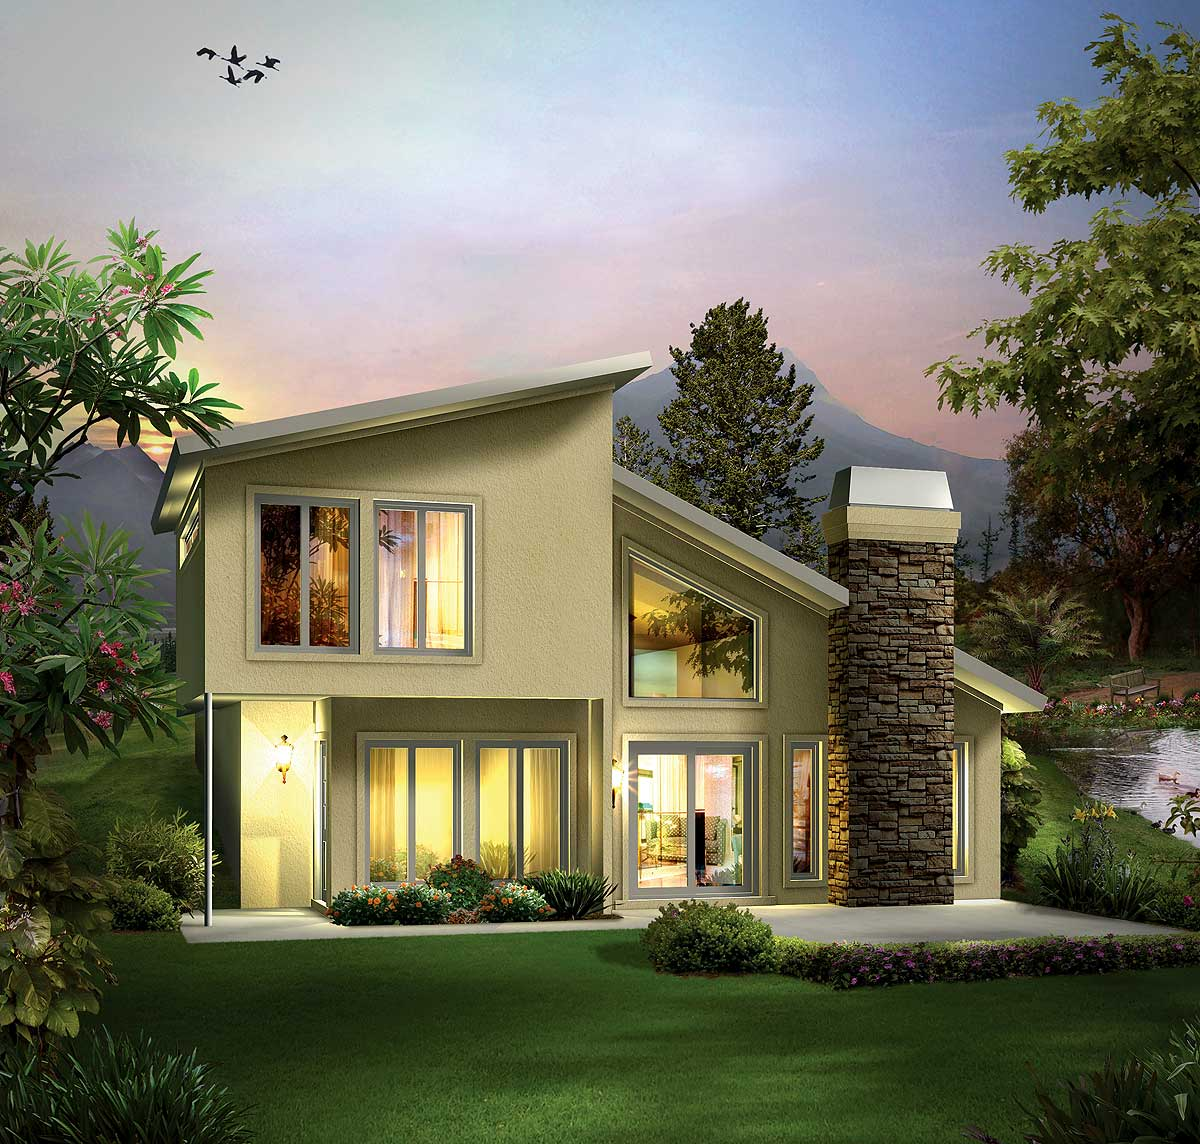 Earth Sheltered Homes Anyone Can Build - Earth sheltered berm home plan 57264ha architectural designs house plans